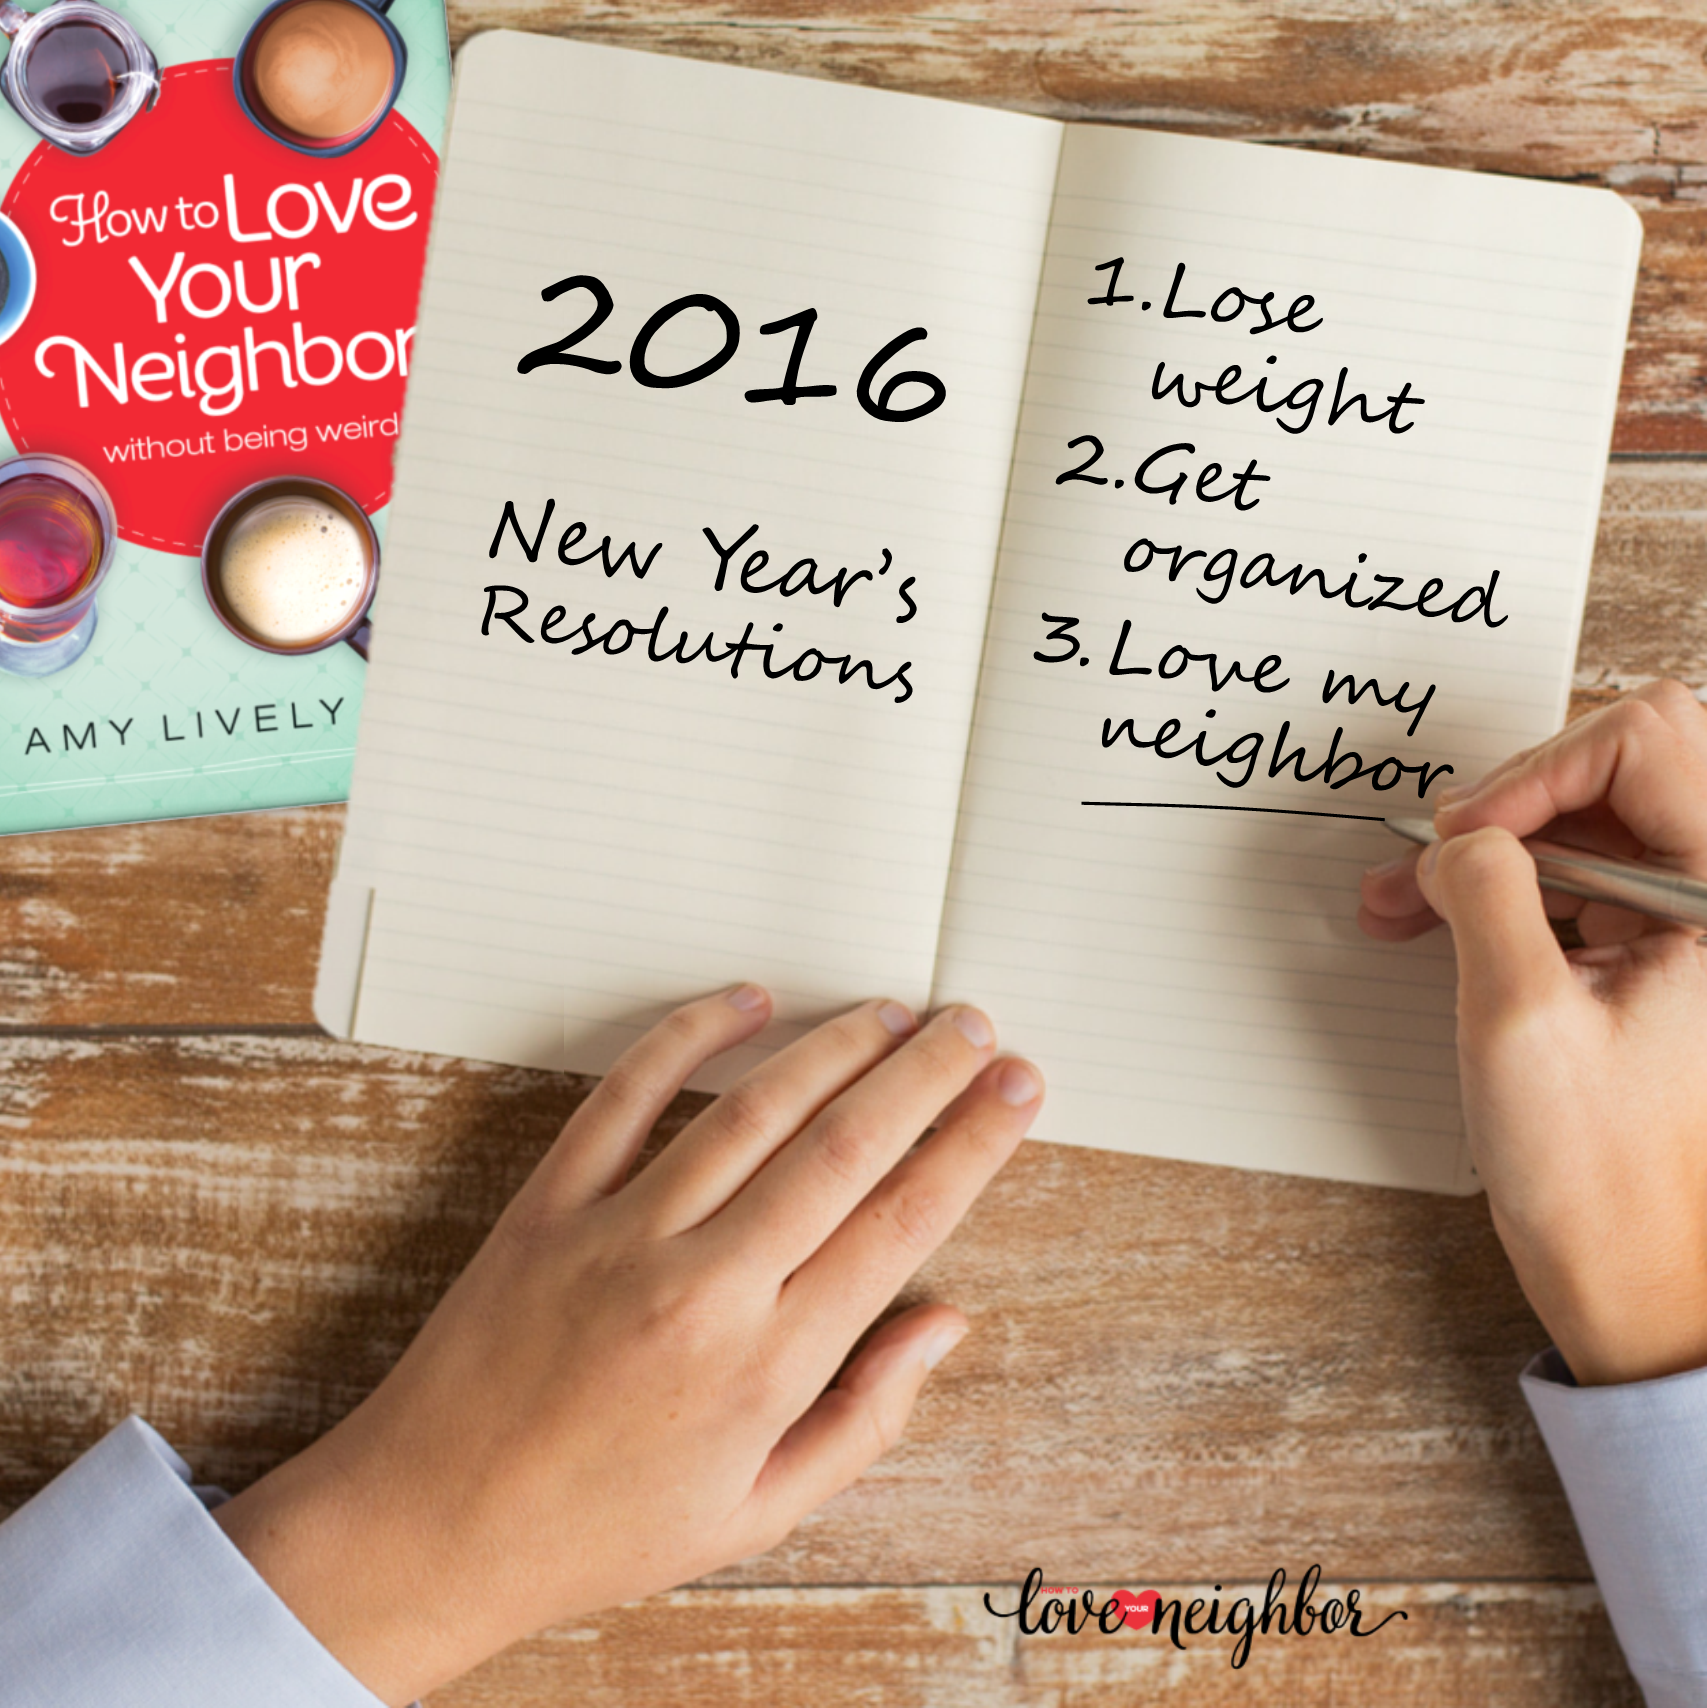 Small group guides how to love your neighbor